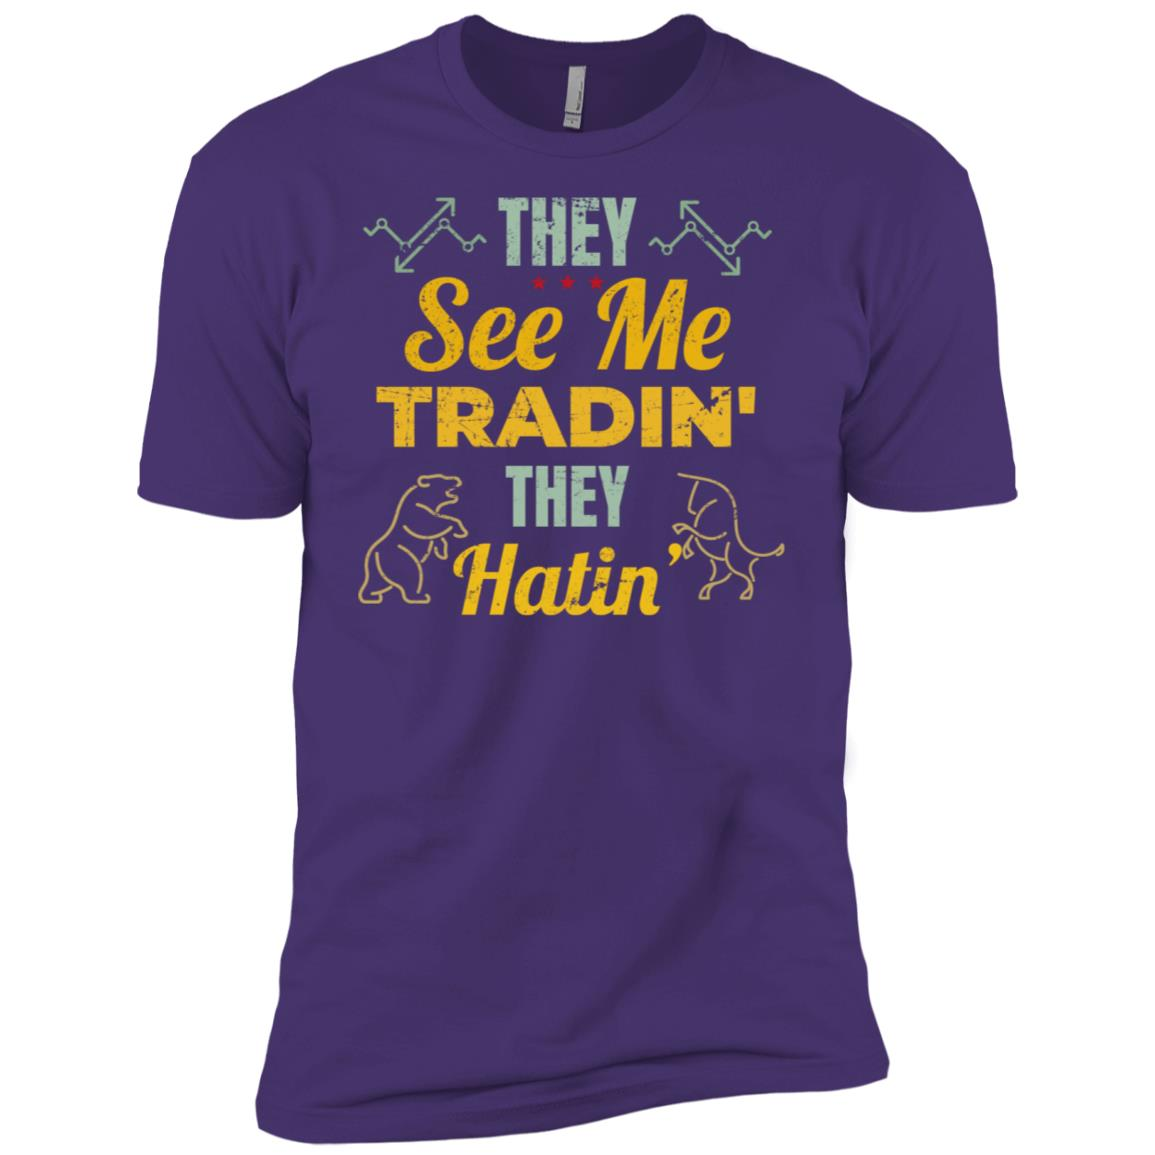 They See Me Tradin' They Hatin' Stock Forex Trader Men Short Sleeve T-Shirt